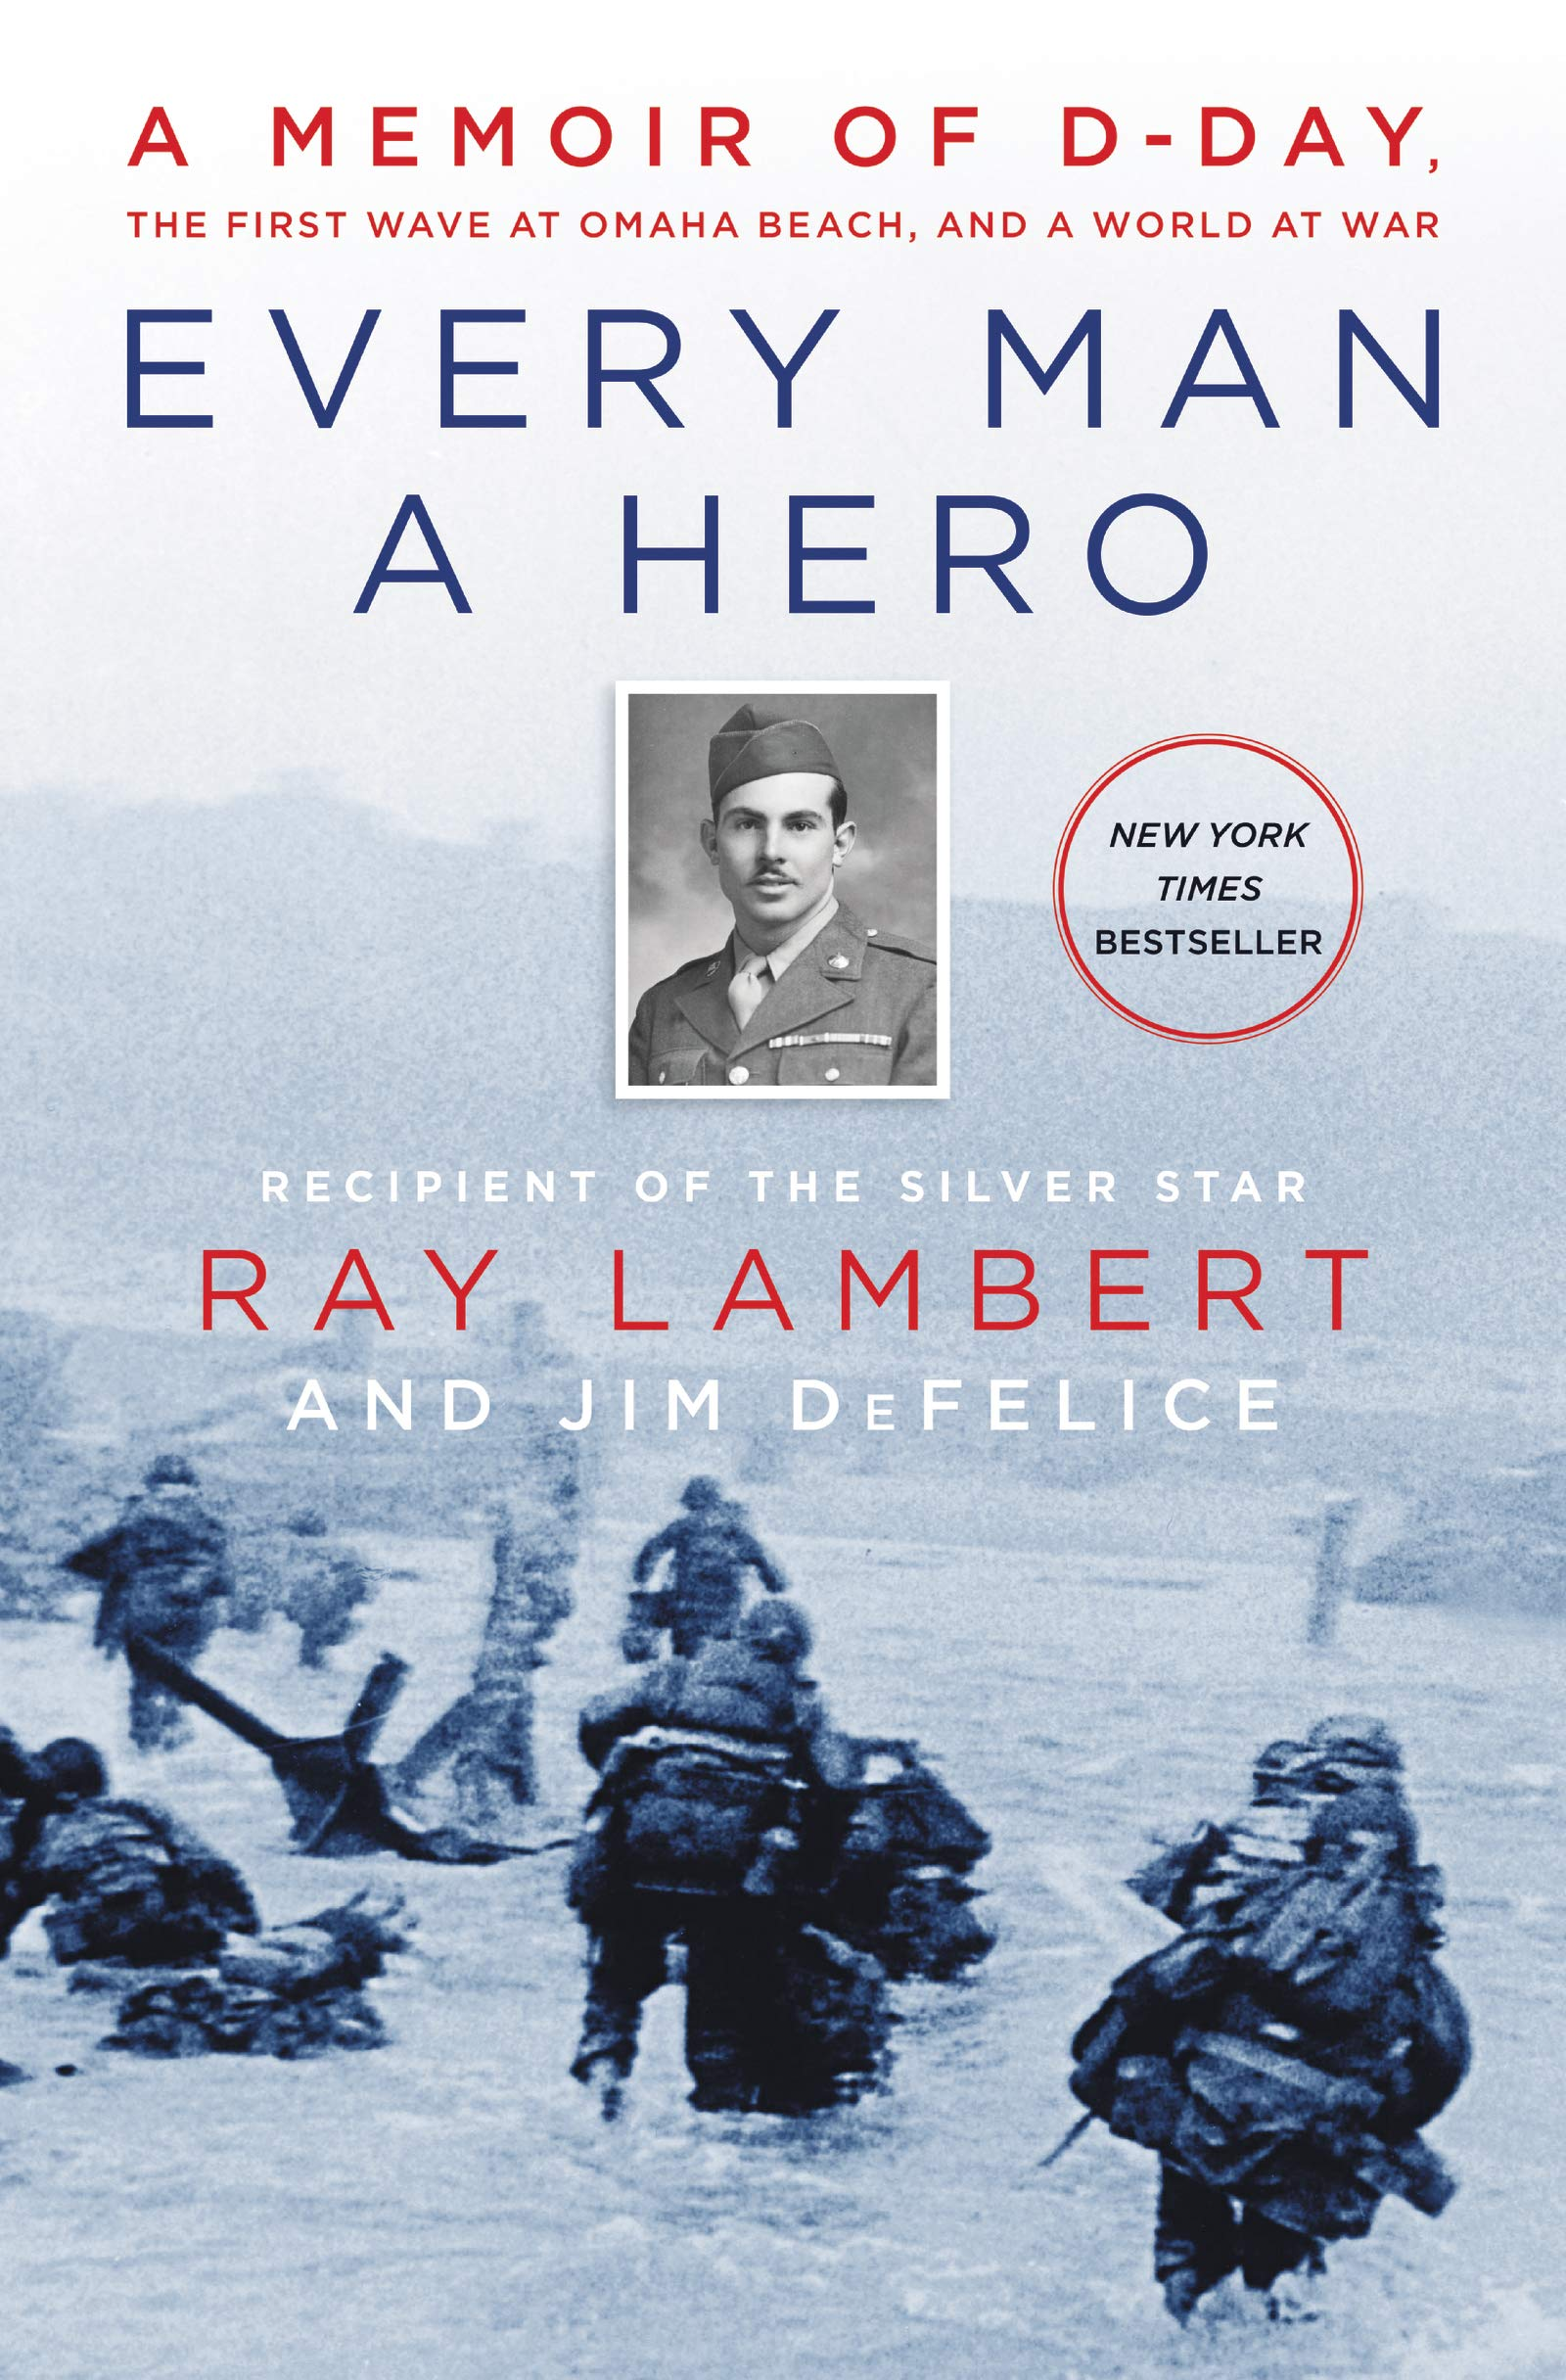 Every Man a Hero: A Memoir of D-Day, the First Wave at Omaha Beach, and a World at War pdf epub